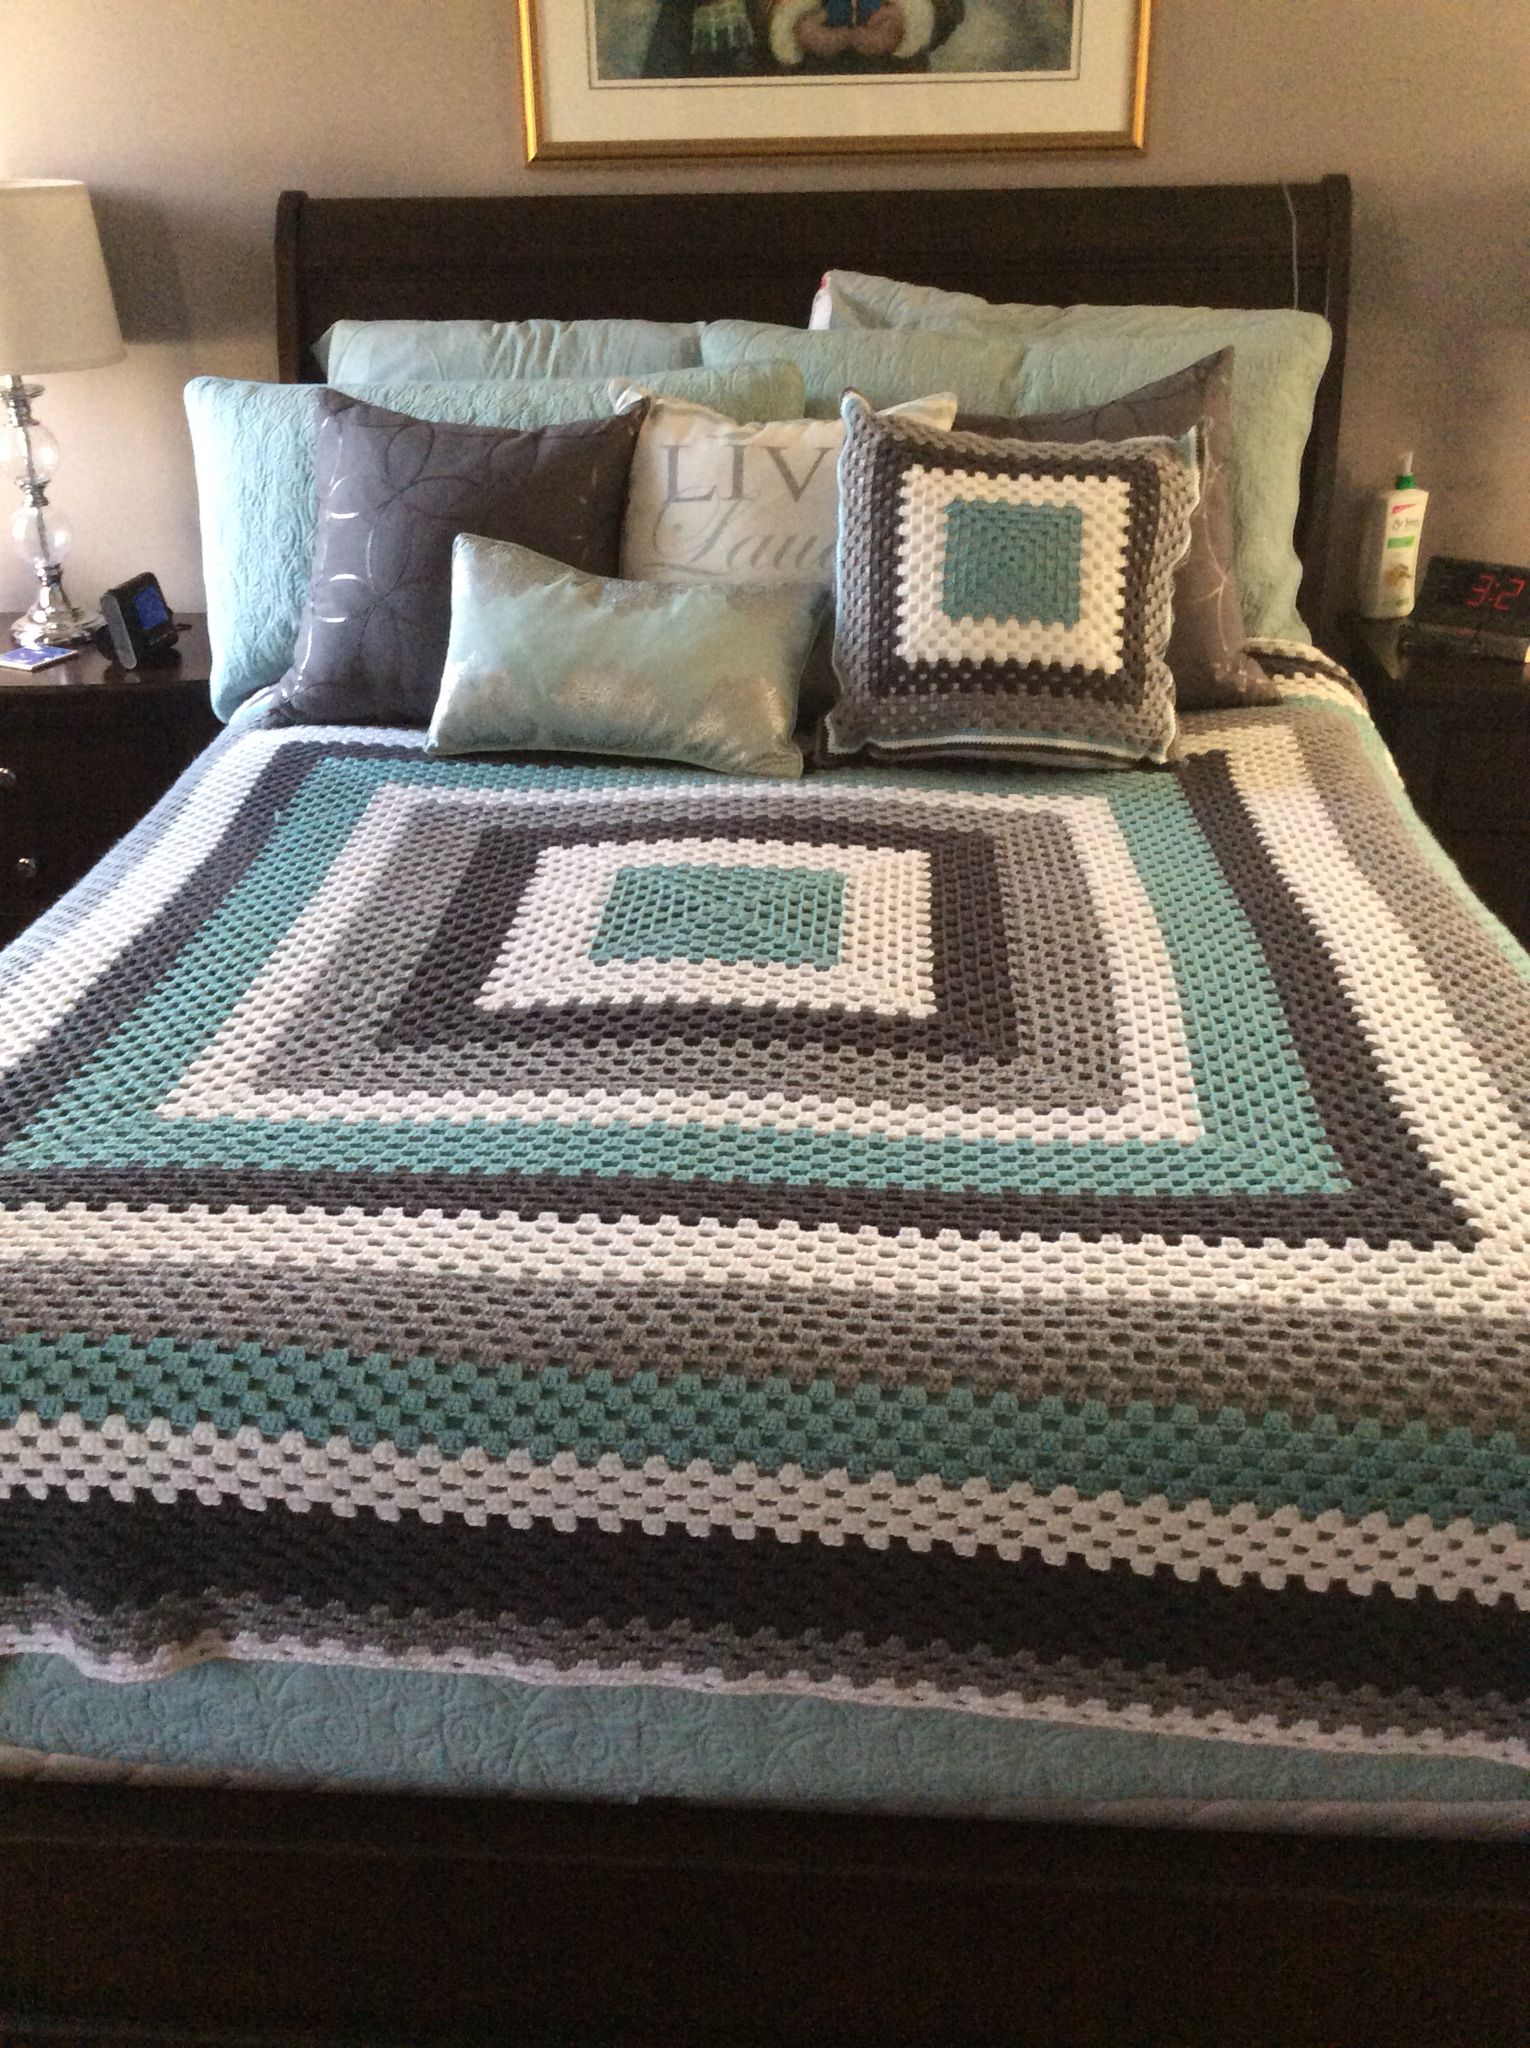 Crochet giant granny square blanket and cushion, teal grey and white ...